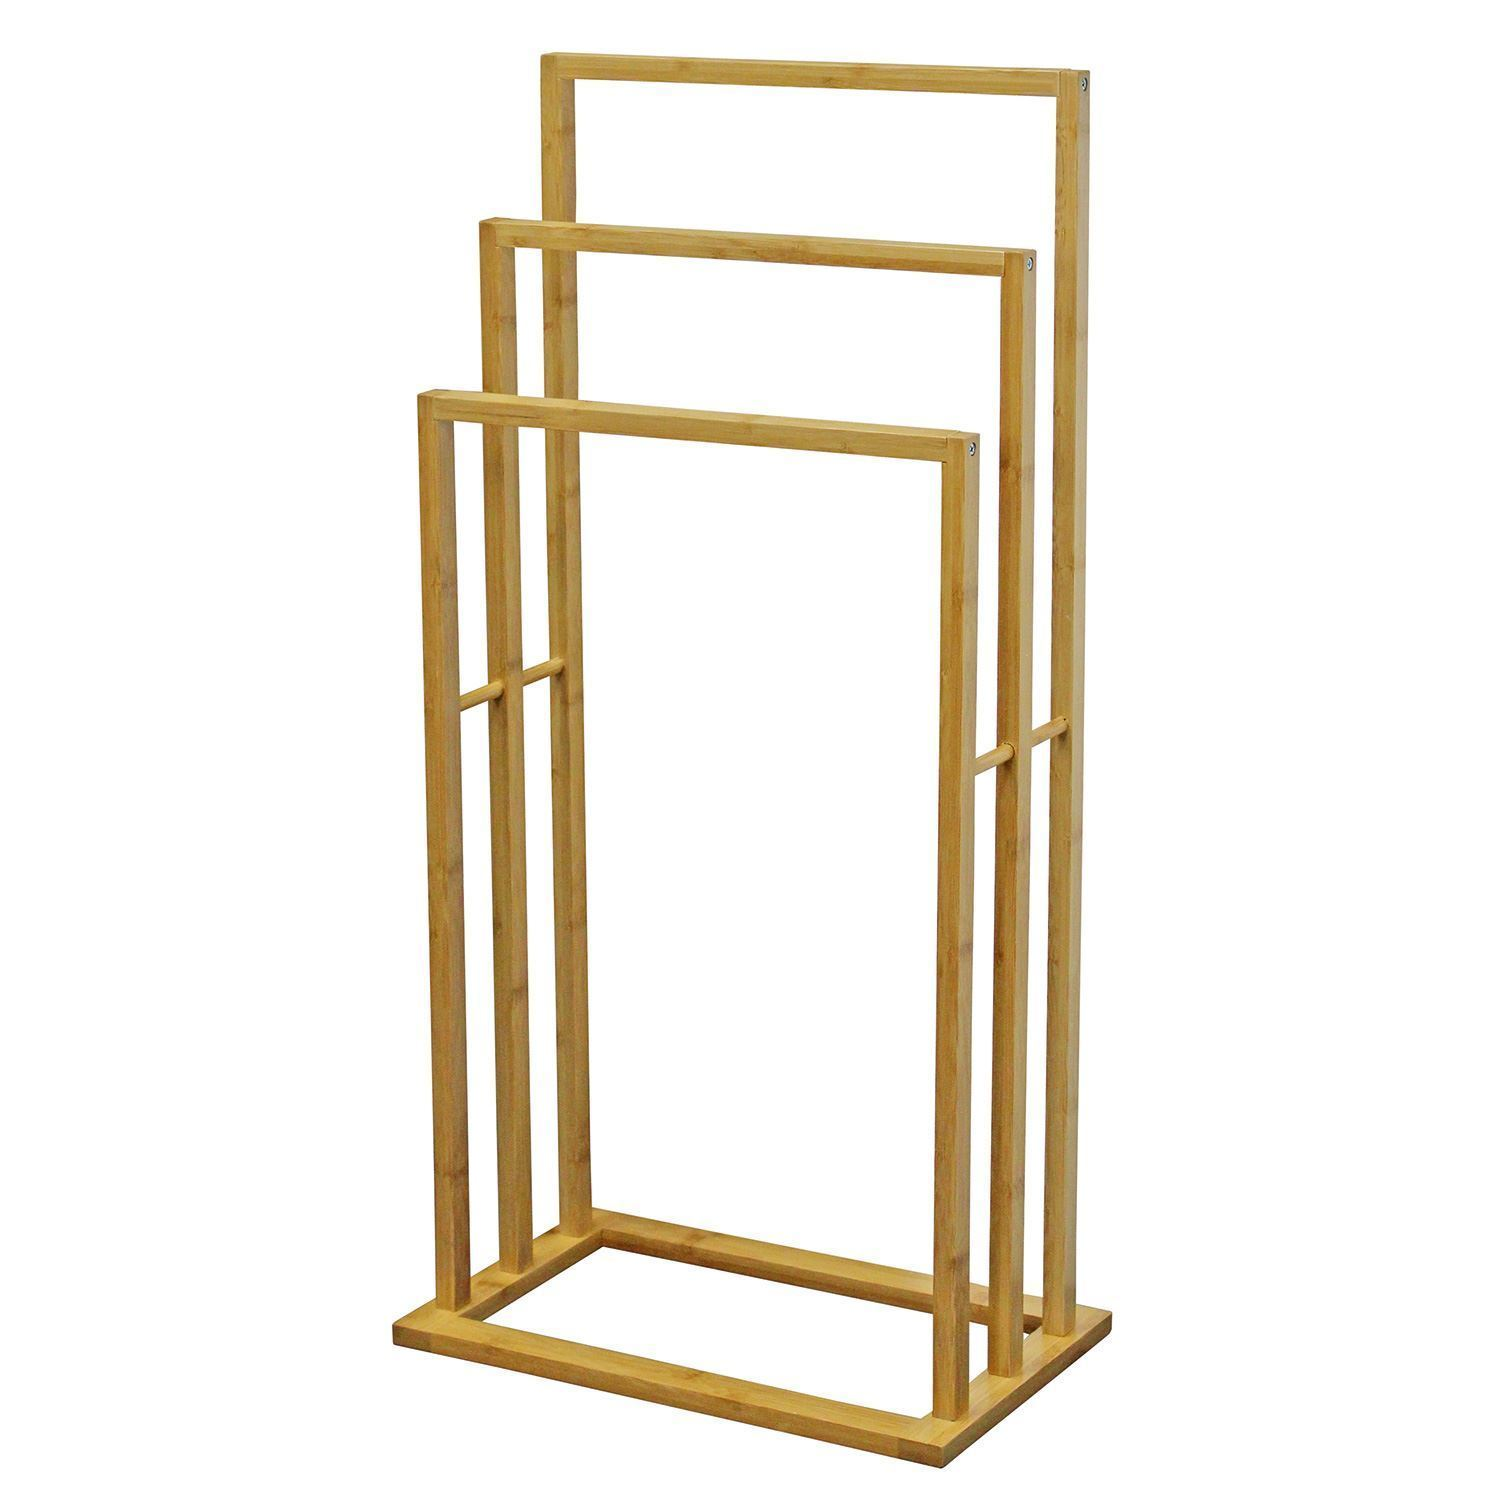 Bamboo Towel Stand Bamboo Towel Stand Suppliers and